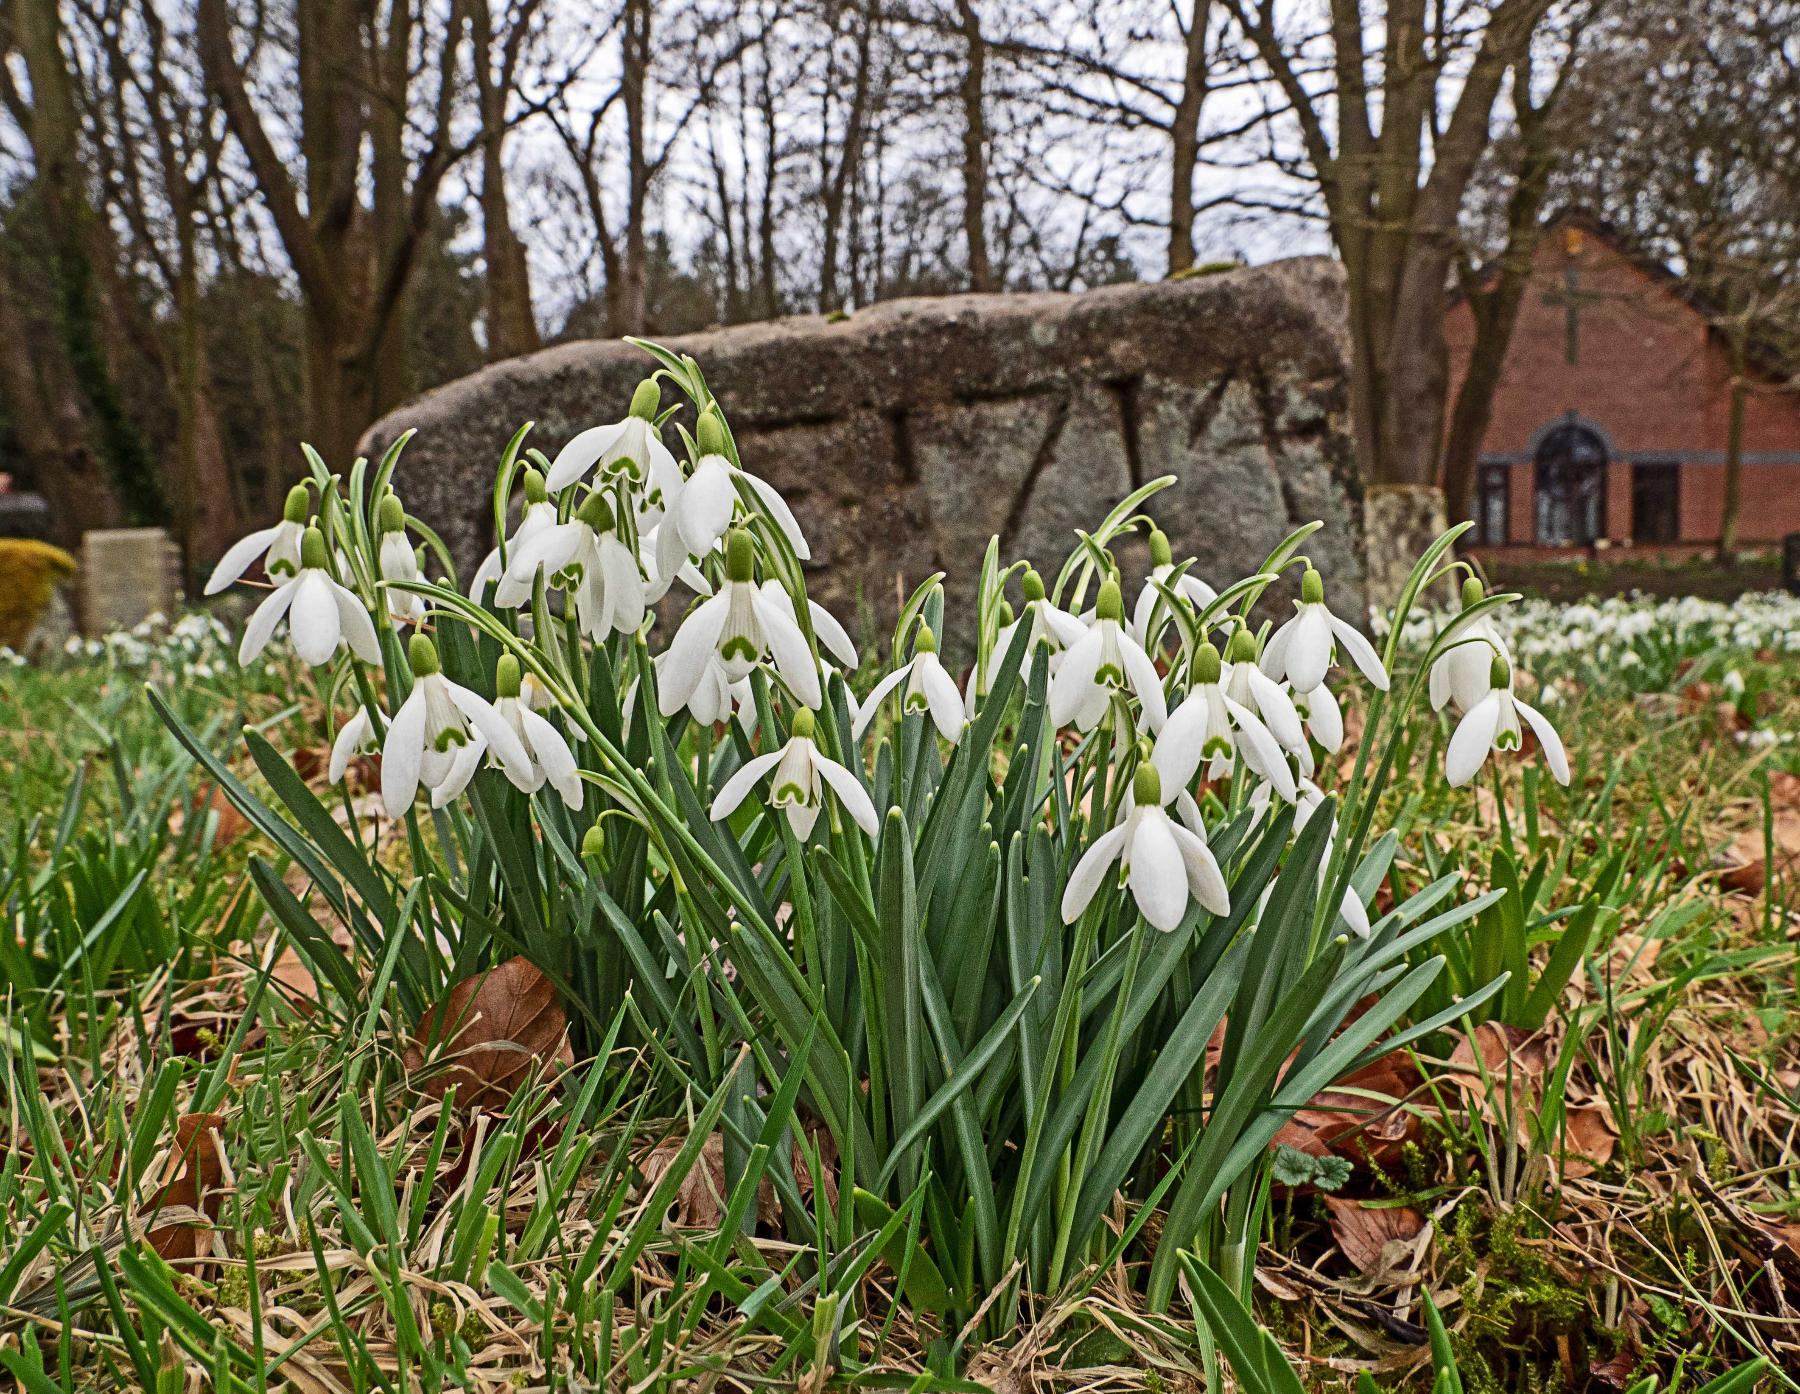 Snowdrops at St Luke's Church graveyard